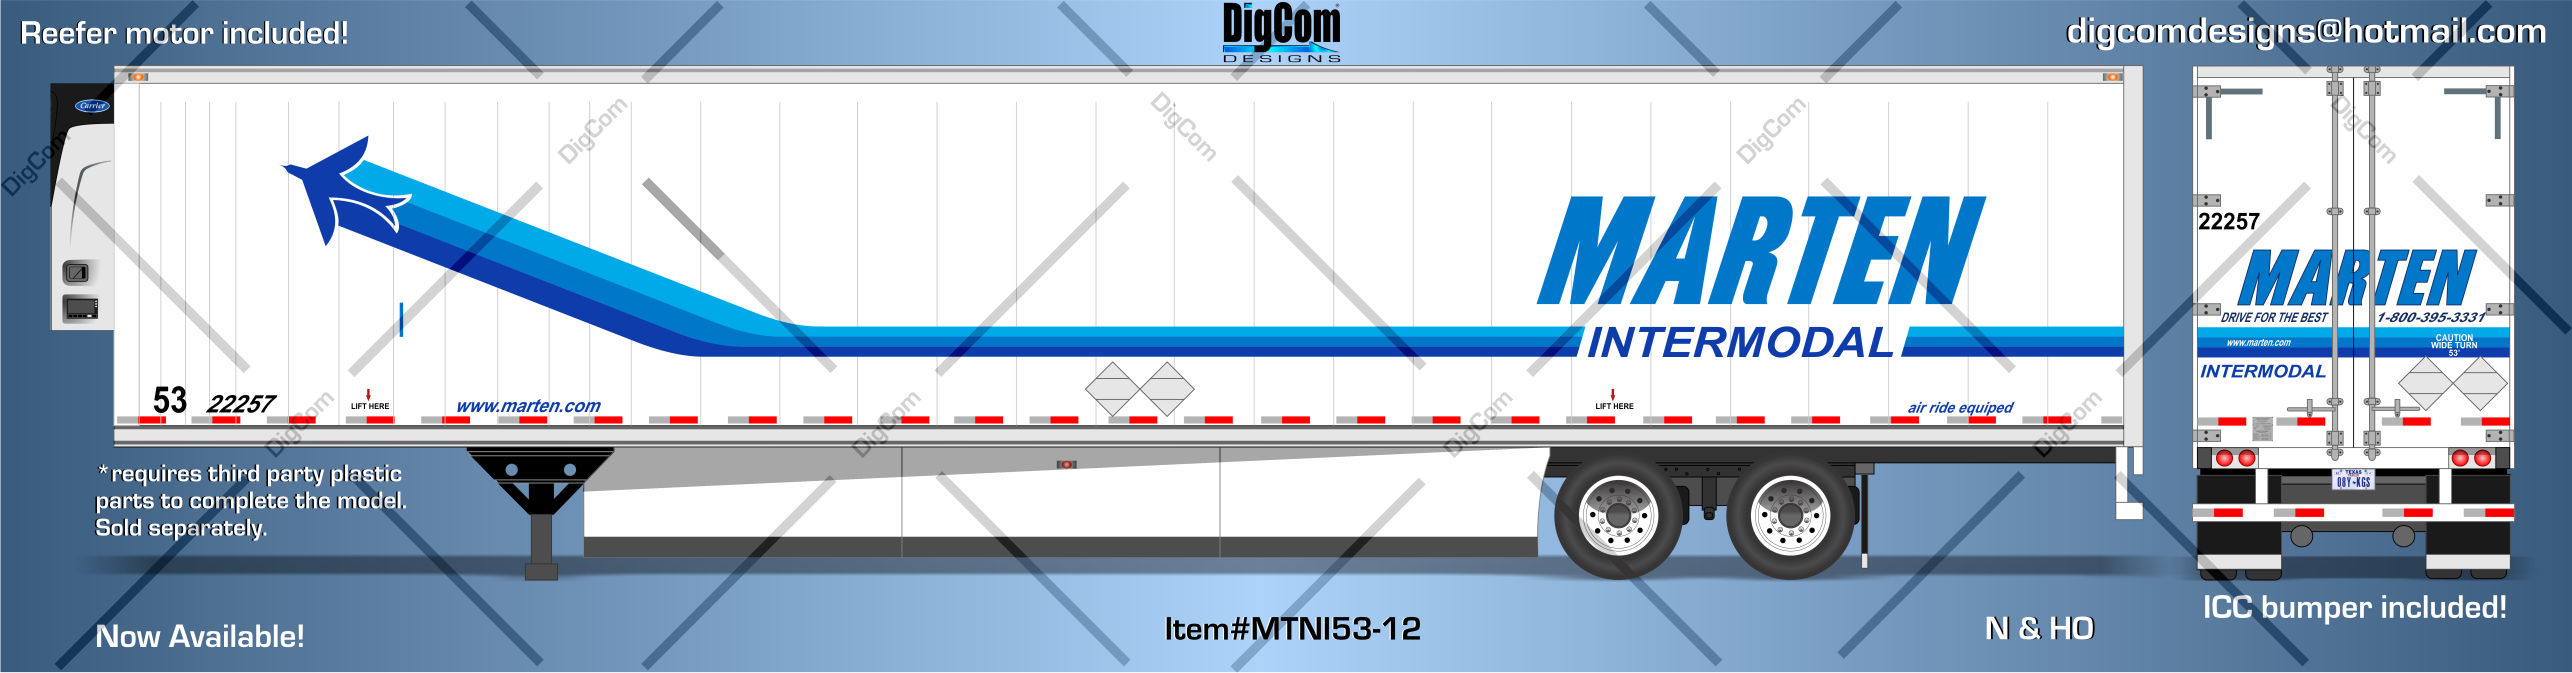 MARTEN INTERMODAL TRAILER DESIGN.jpg